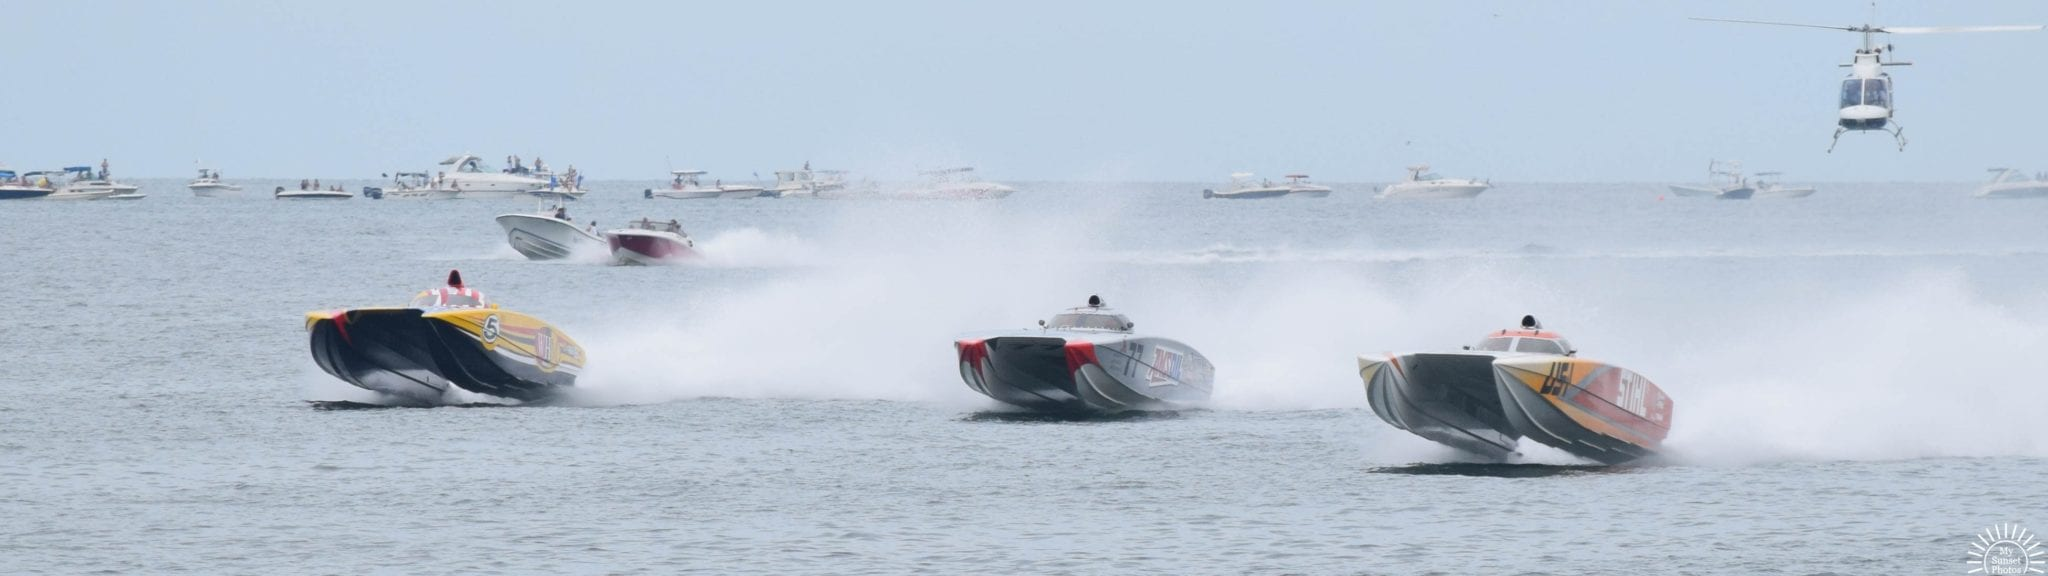 Clearwater Super Boat National Championship Took Place Today